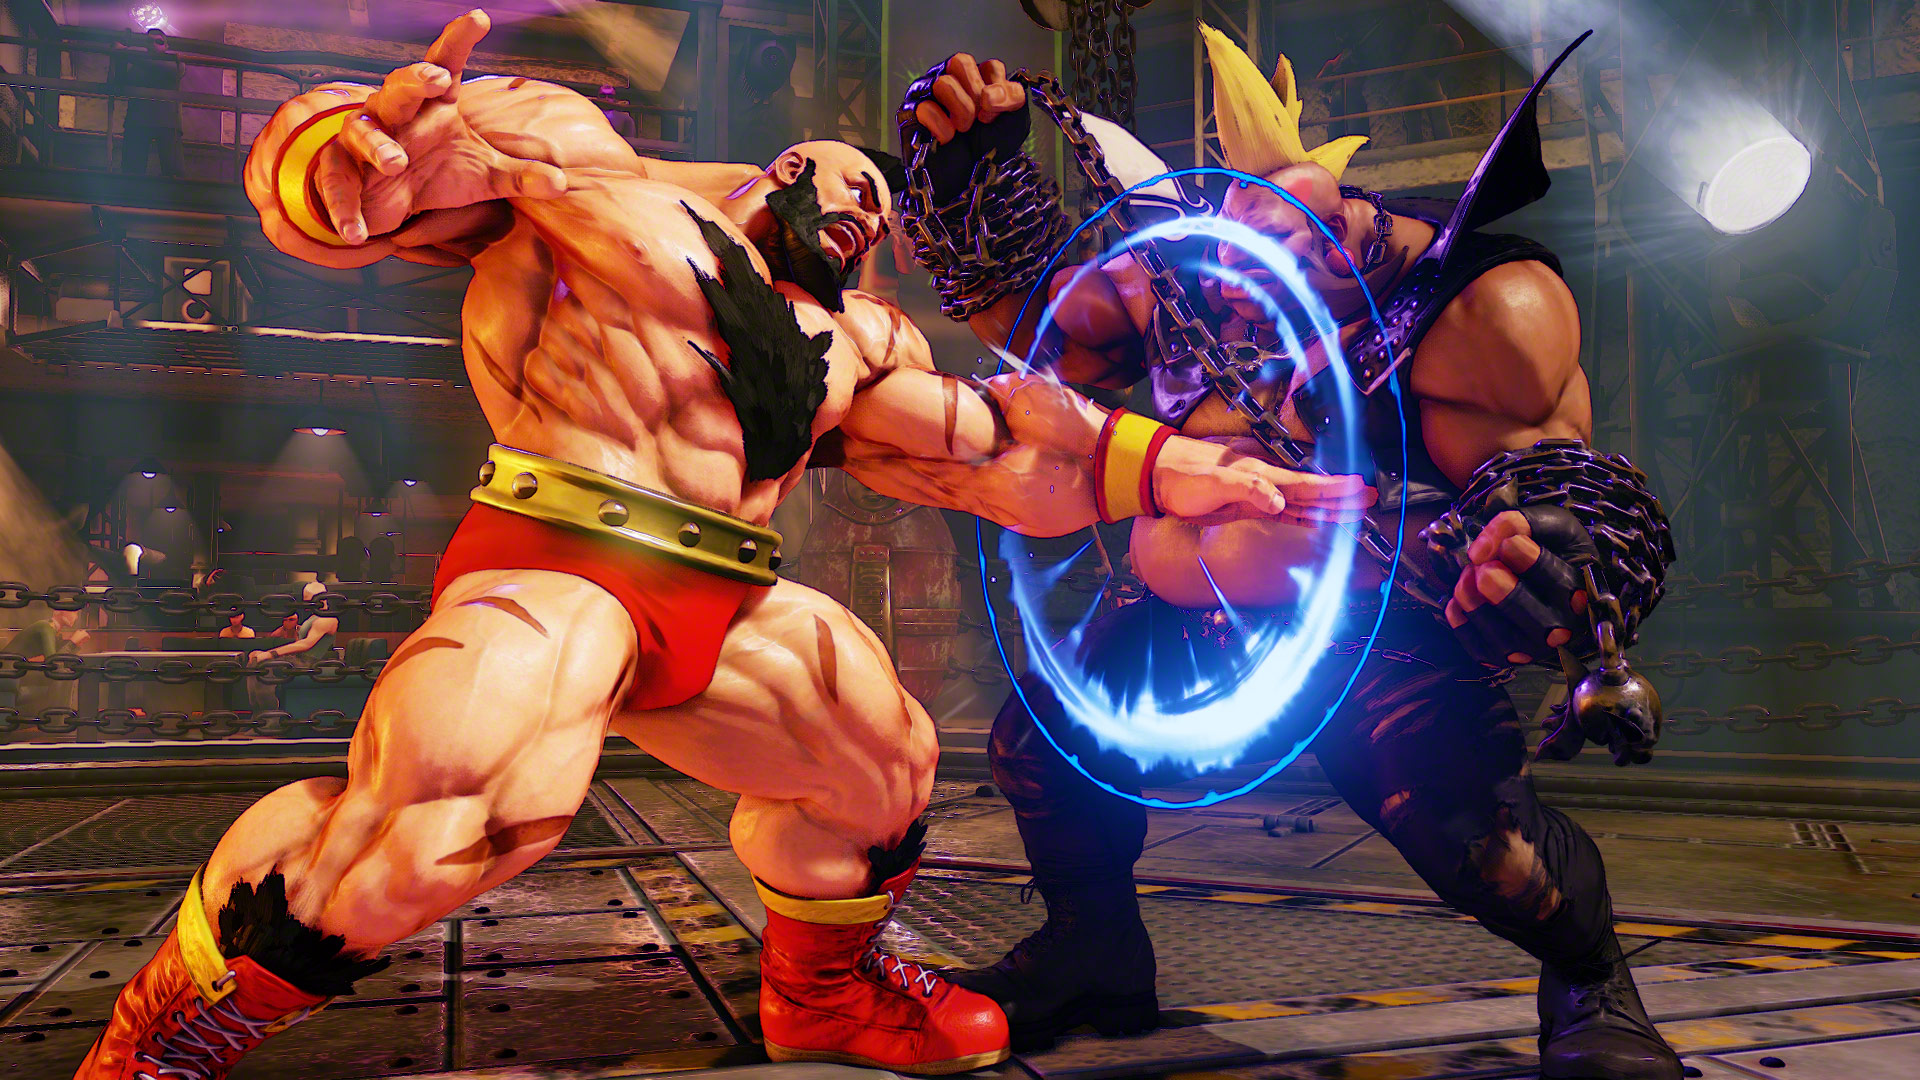 Zangief returns in Street Fighter 5 9 out of 18 image gallery